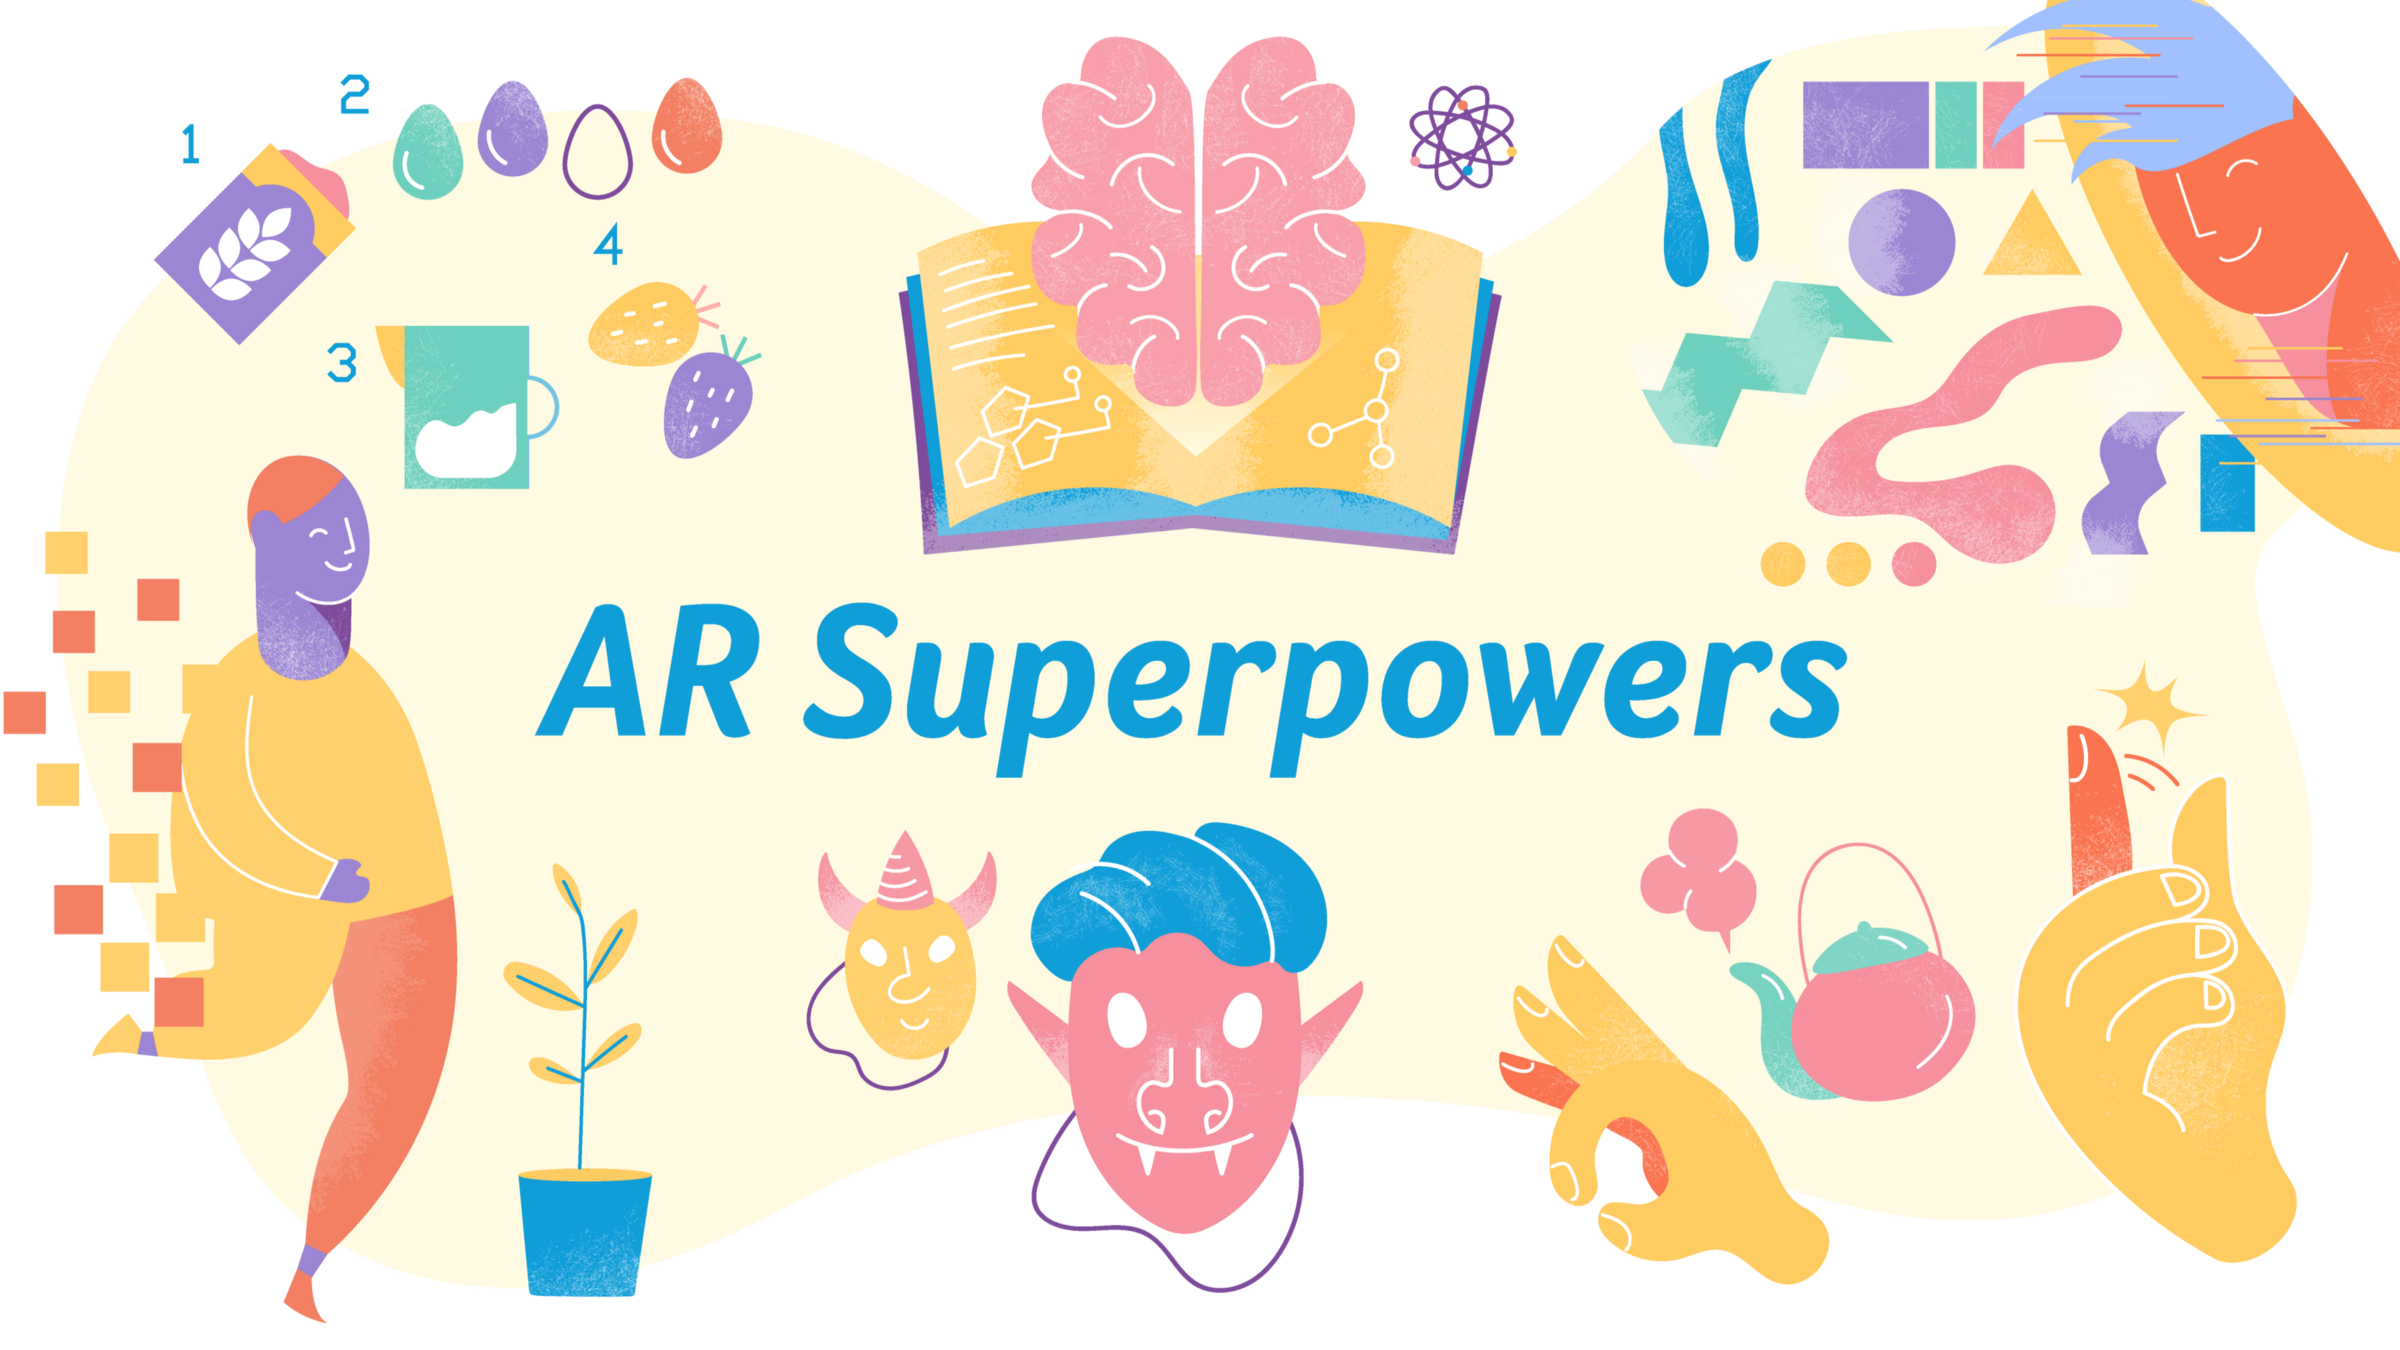 AR Superpowers